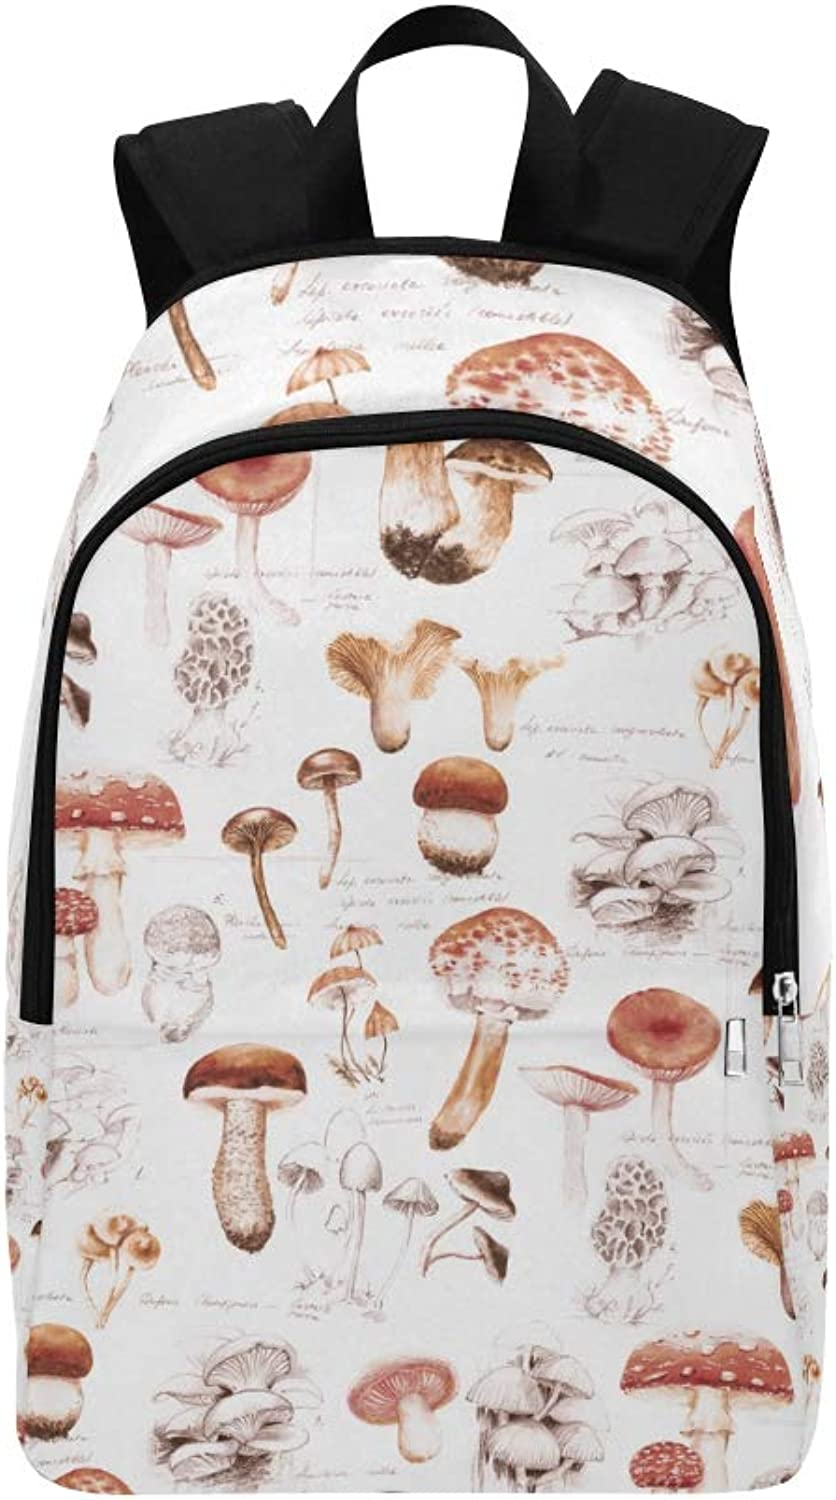 Fresh Mushrooms Watercolor Paint Casual Daypack Travel Bag College School Backpack for Mens and Women